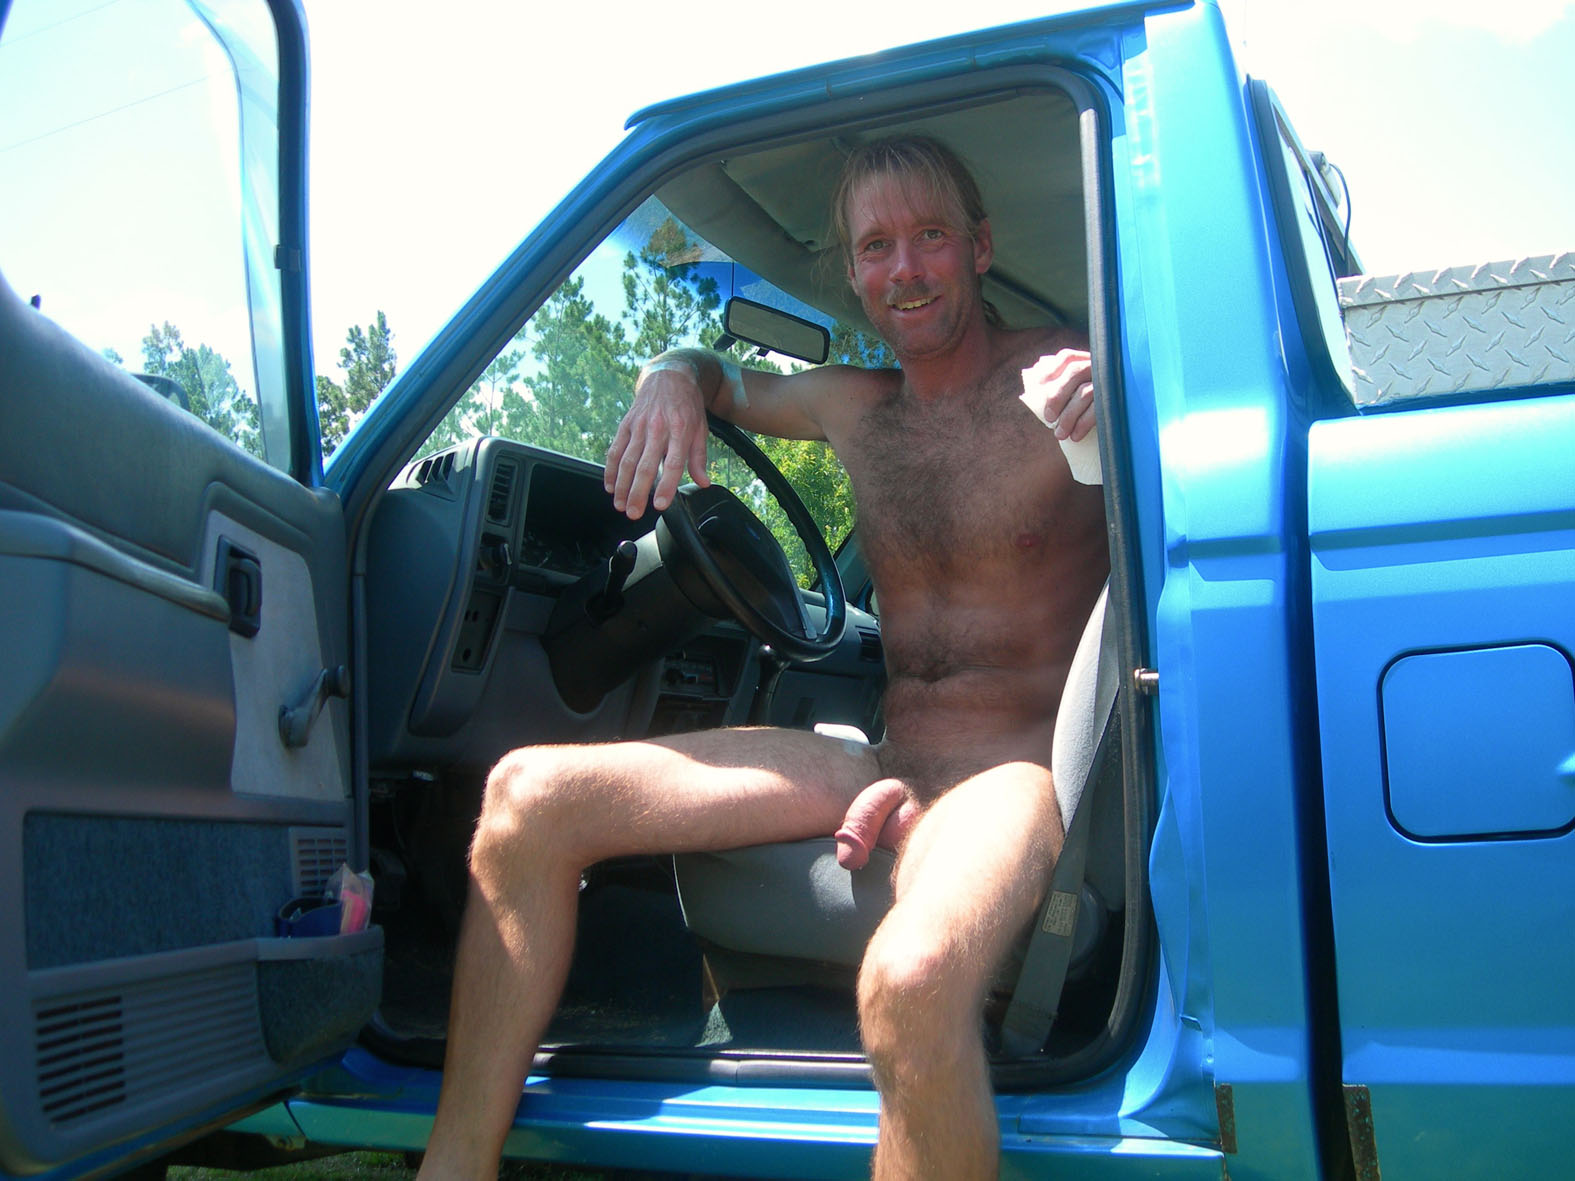 naked exhibitionist in car